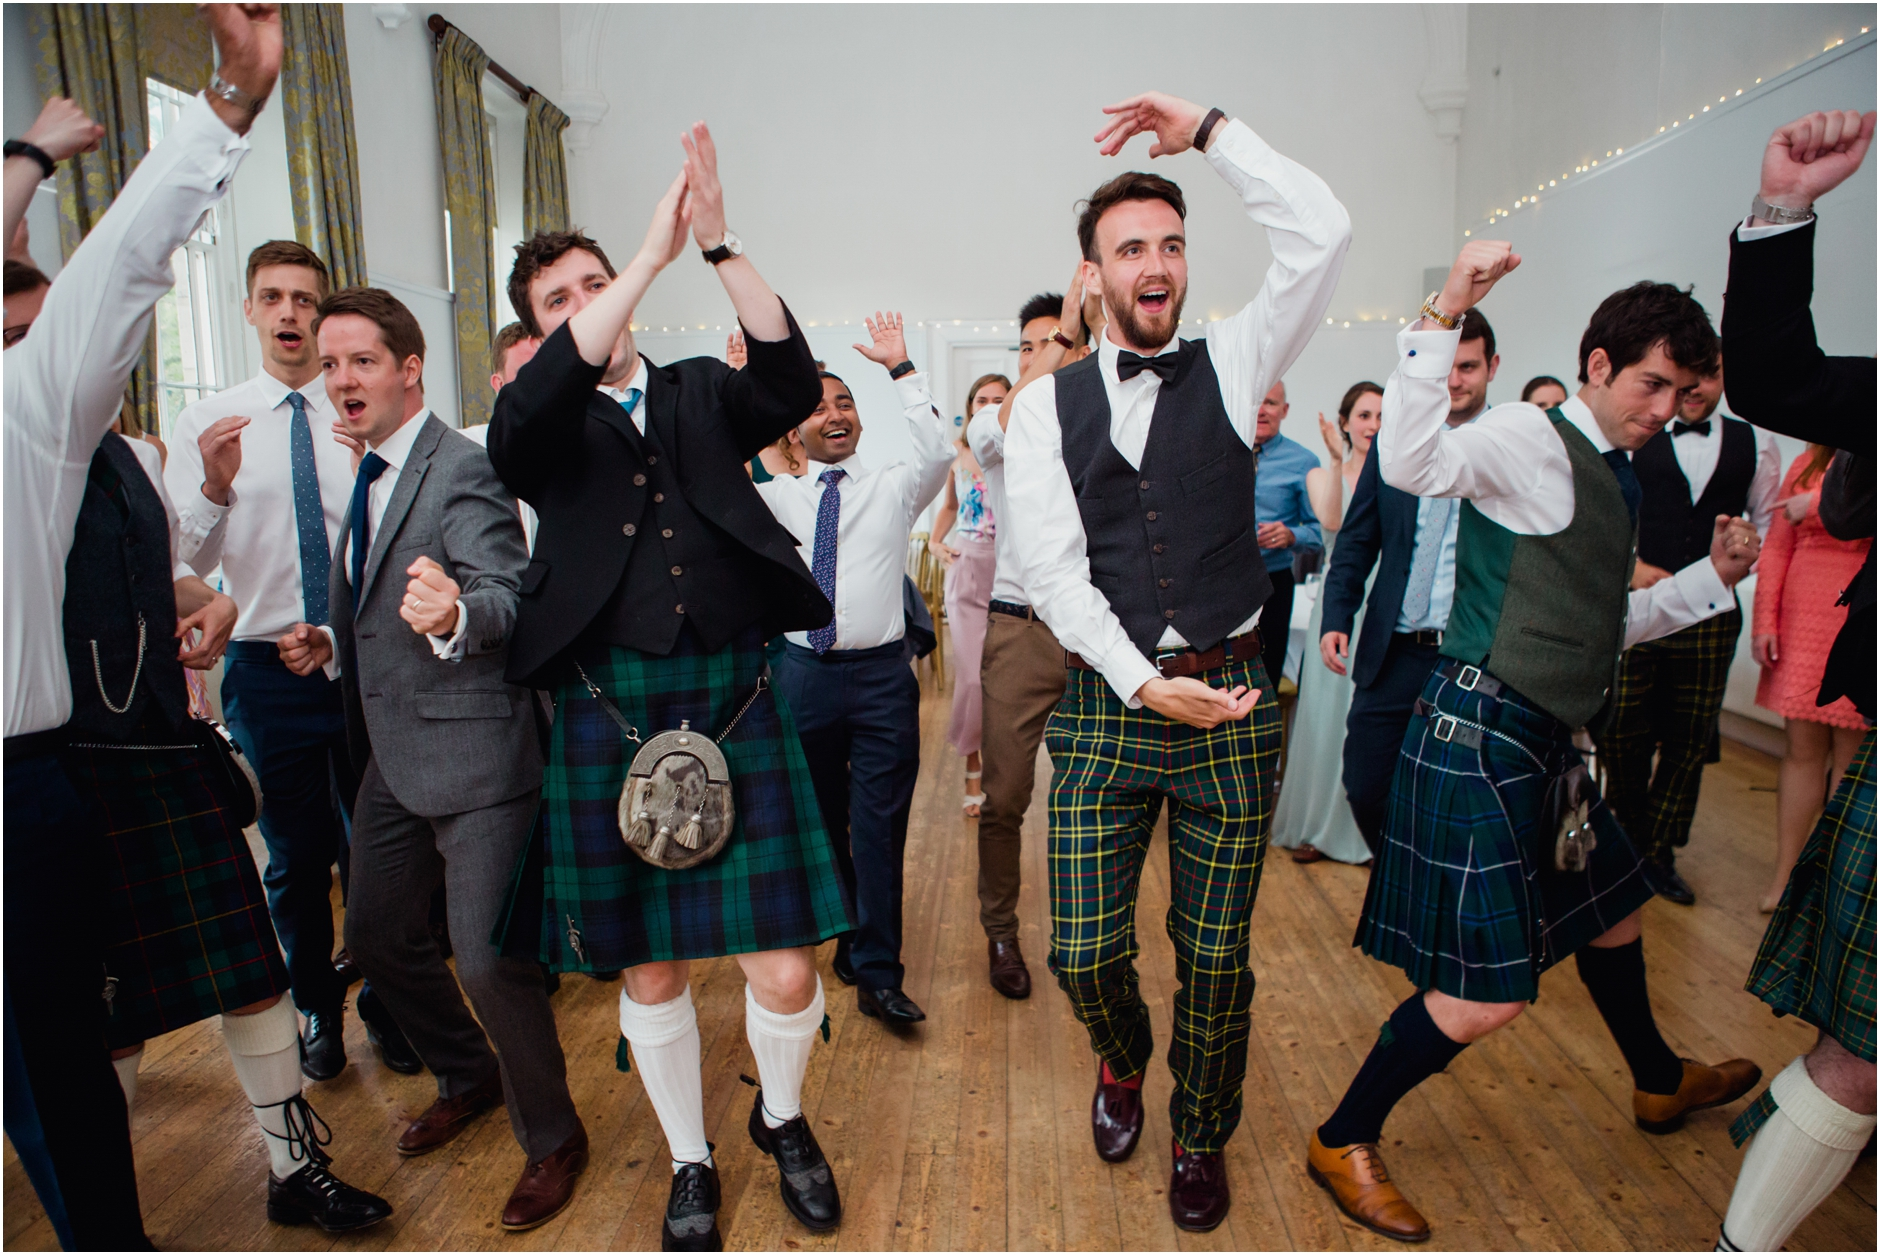 alternative scottish wedding photographer ceilidh dancing